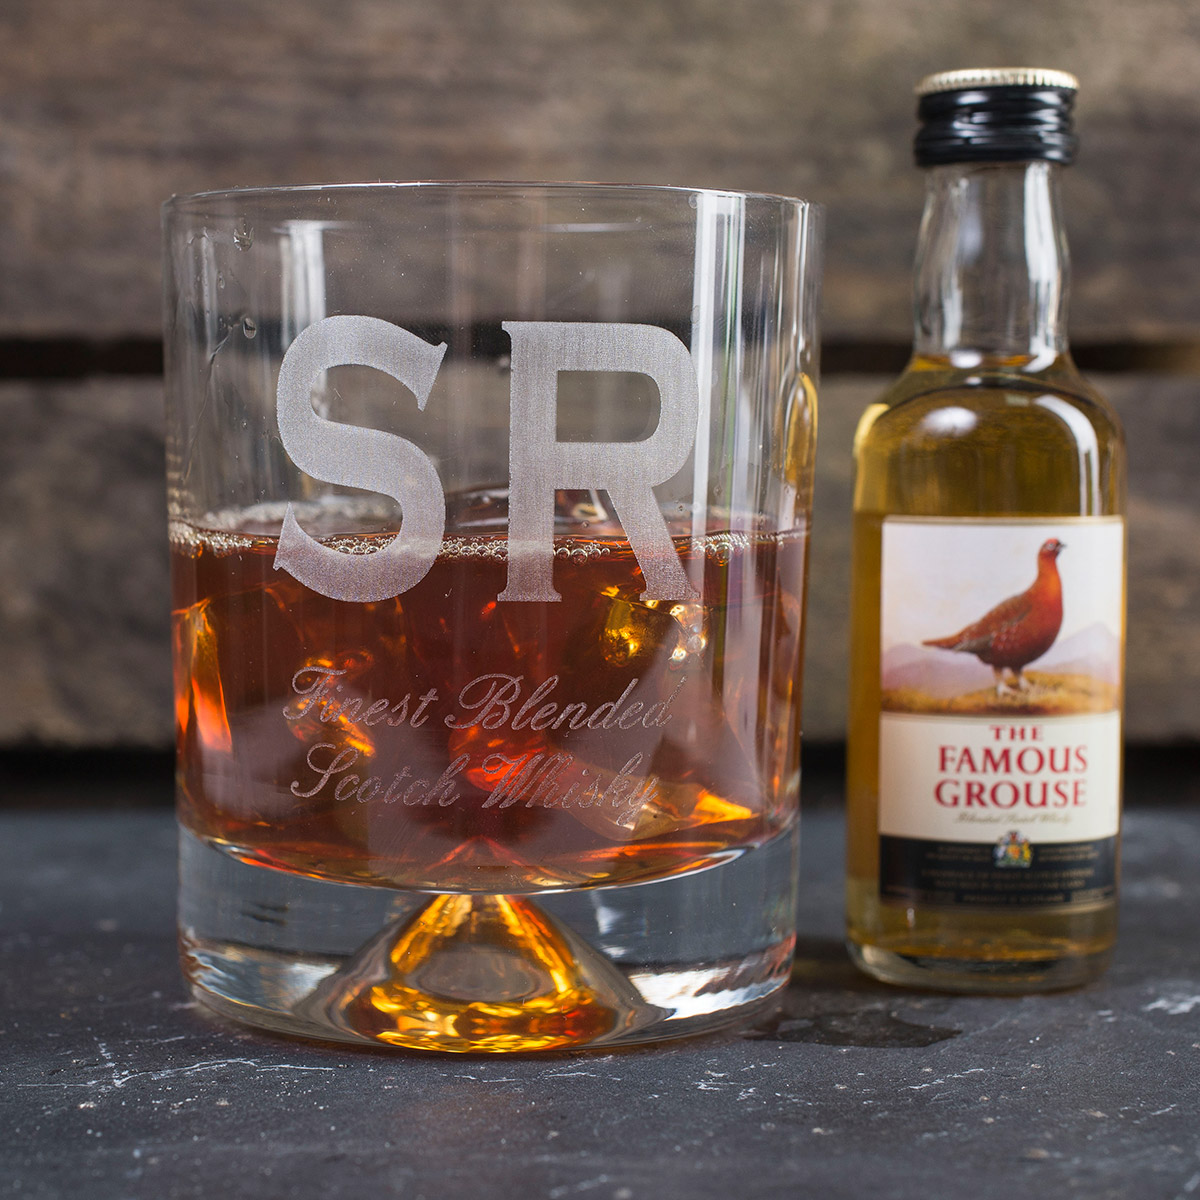 Personalised Stern Whisky Tumbler and Famous Grouse Miniature  Finest